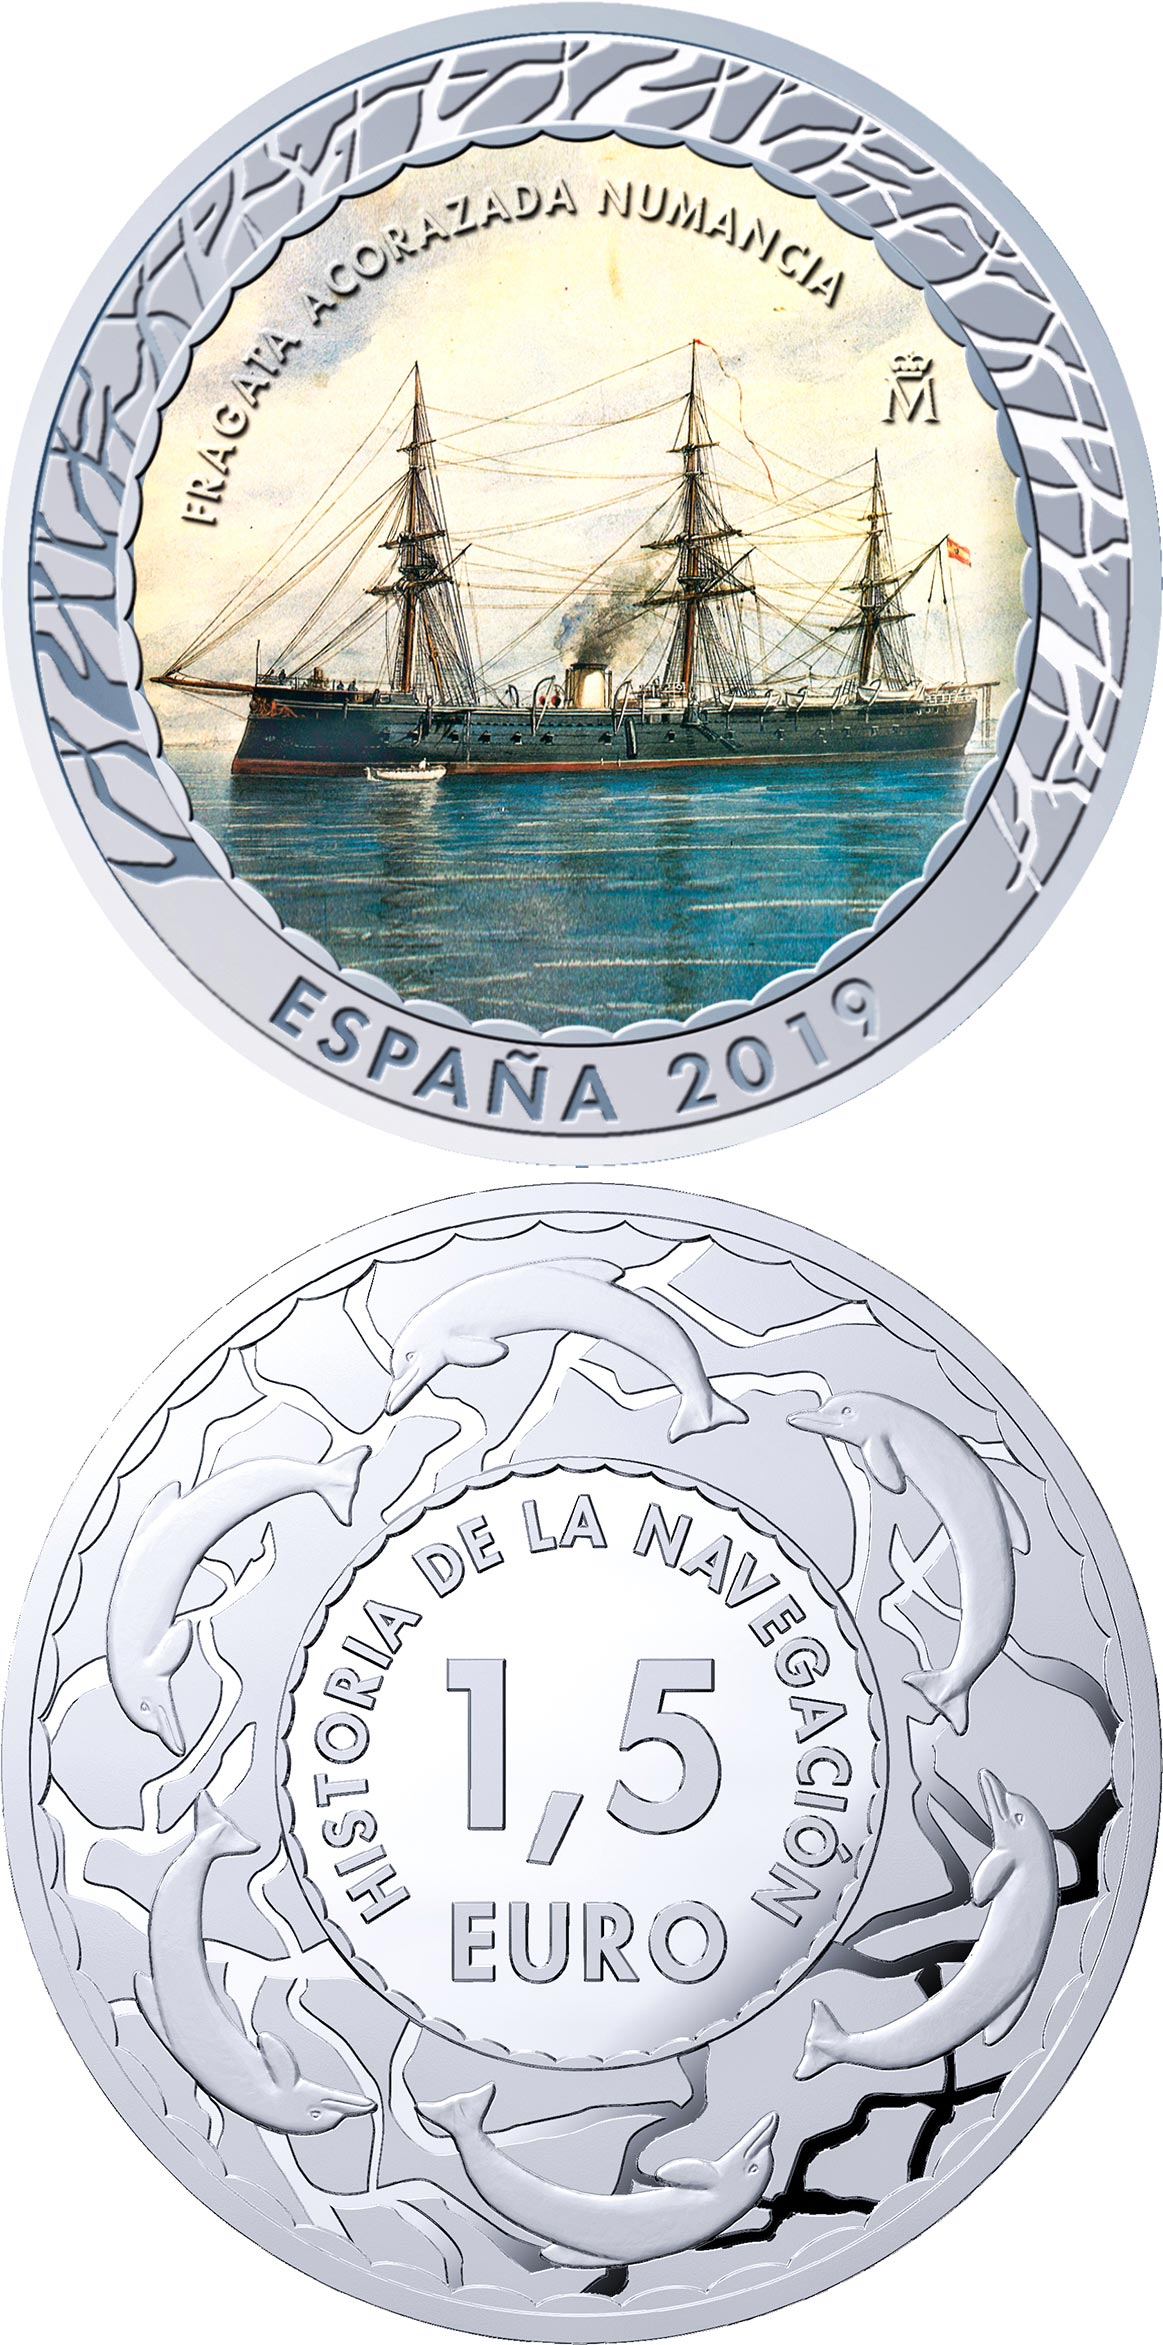 Image of 1.5 euro coin - Spanish Ironclad Numancia | Spain 2019.  The Copper–Nickel (CuNi) coin is of BU quality.